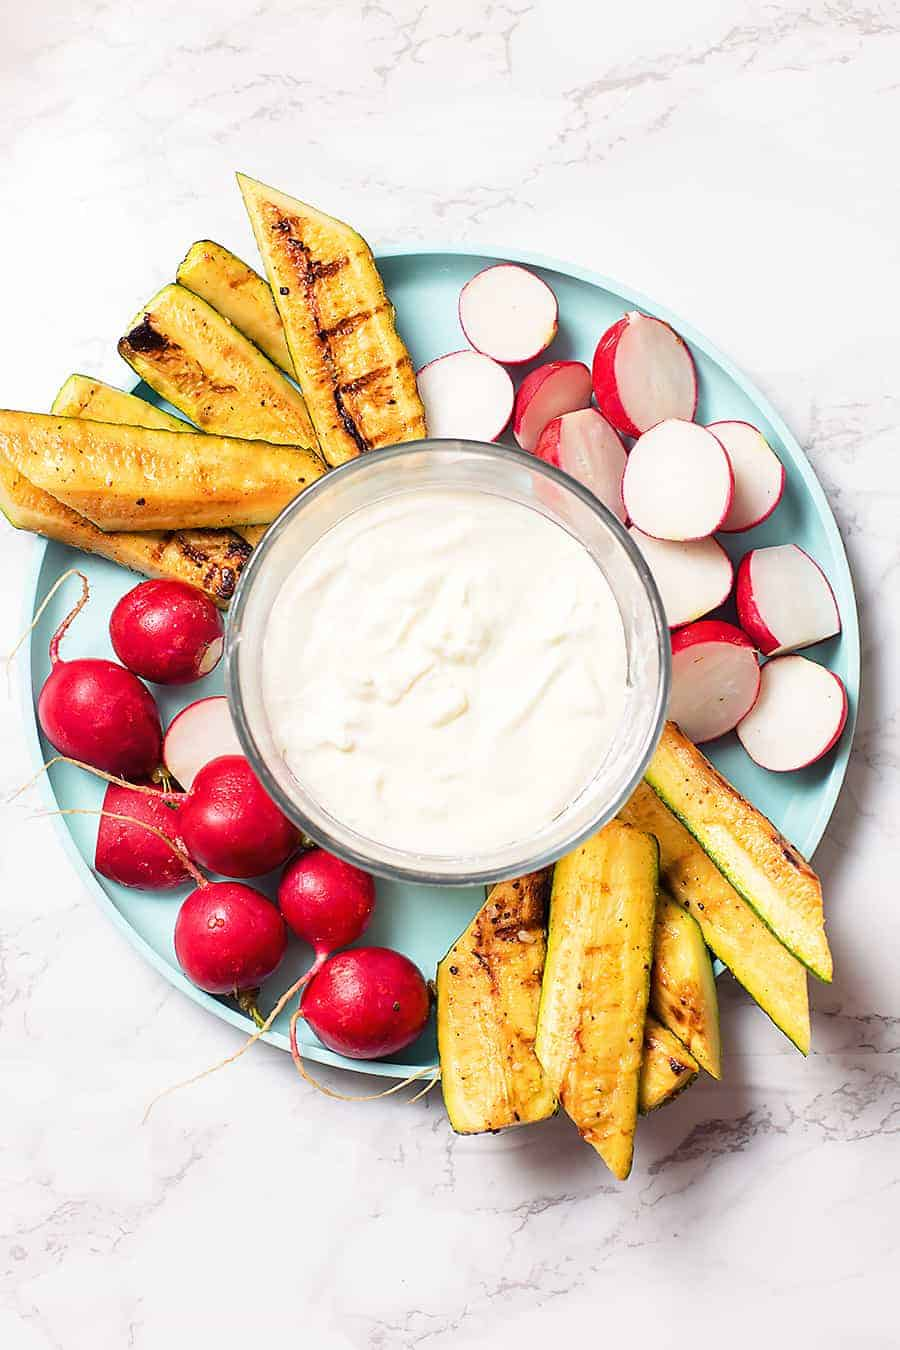 creamy feta dip in a glass bowl surrounded by roasted zucchini and radishes